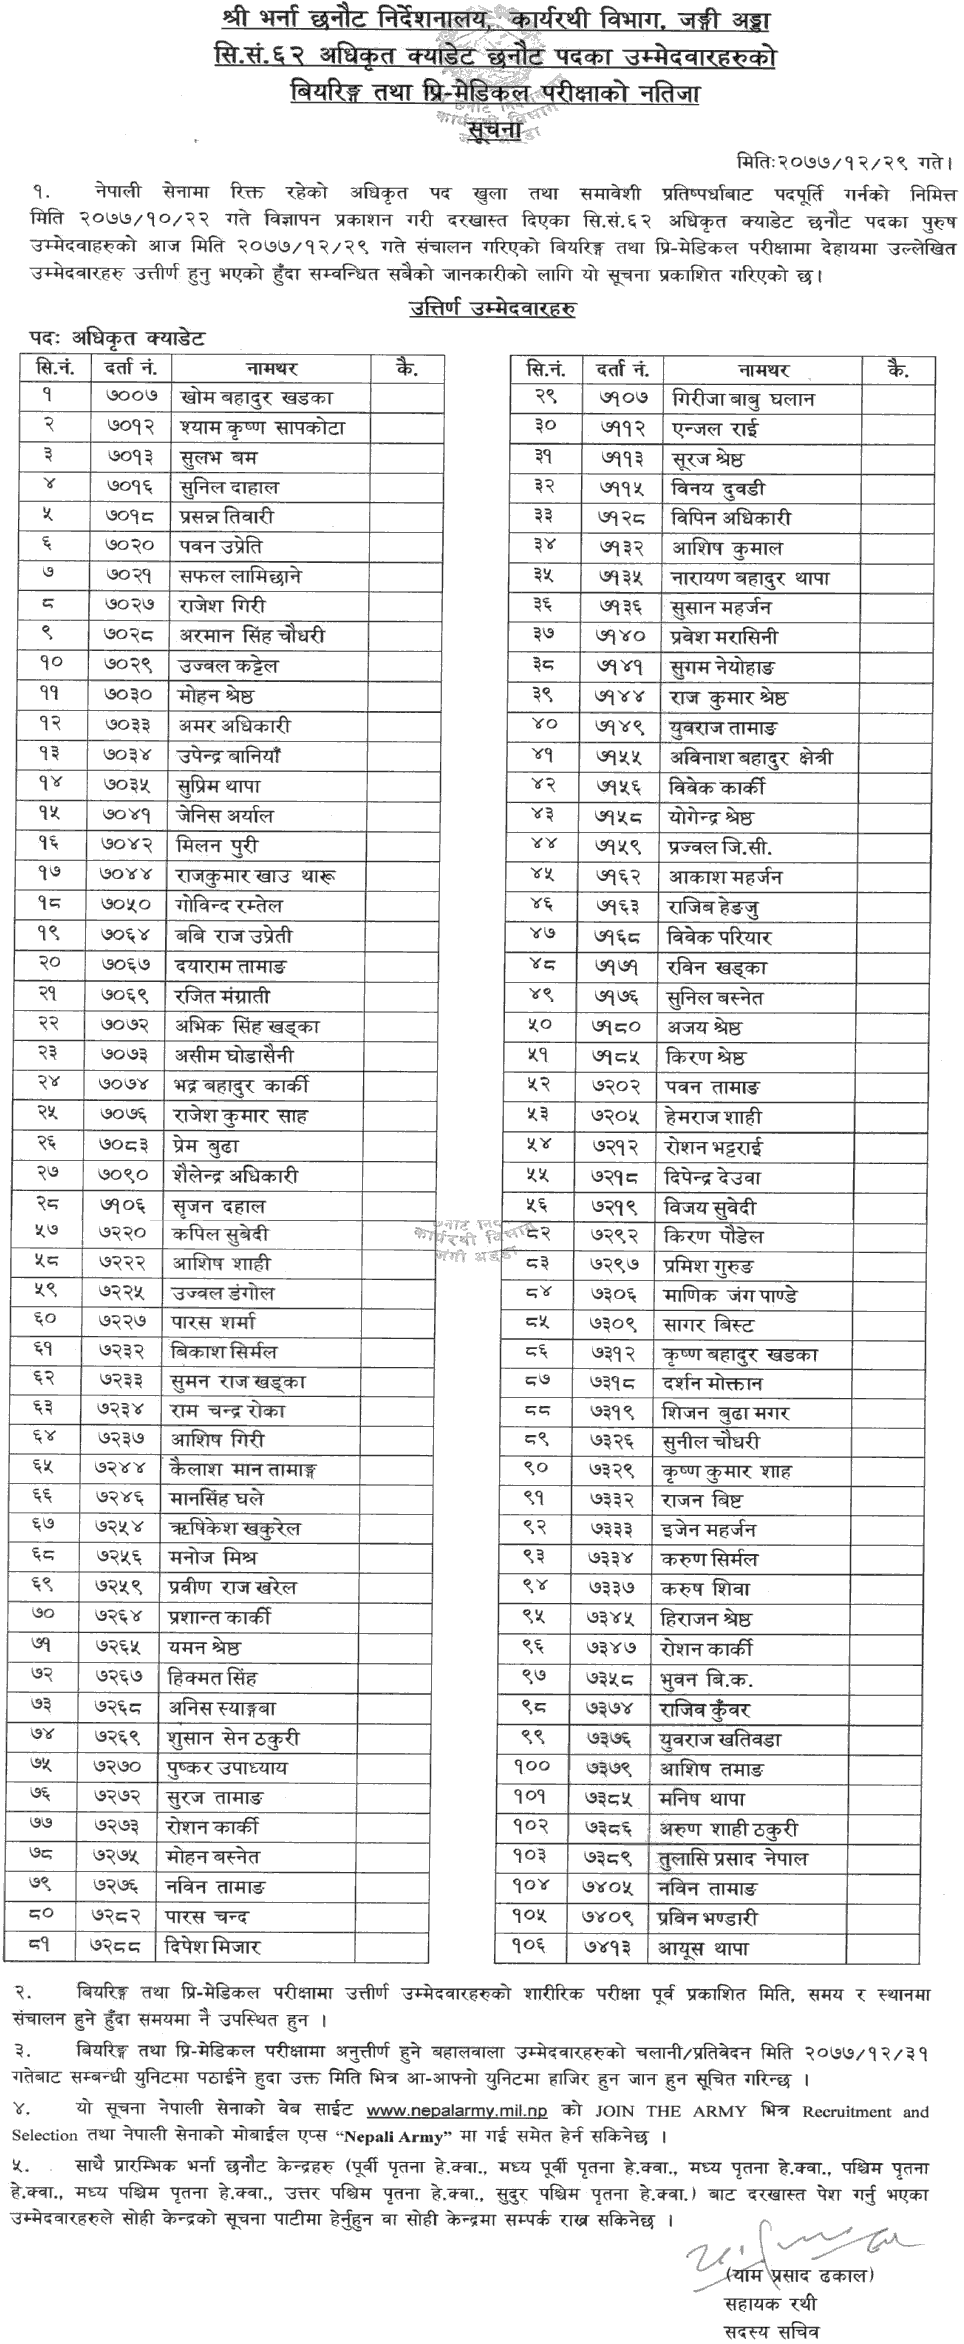 Nepal Army Officer Cadet Bearing, Pre-Medical Exam Result (Male)